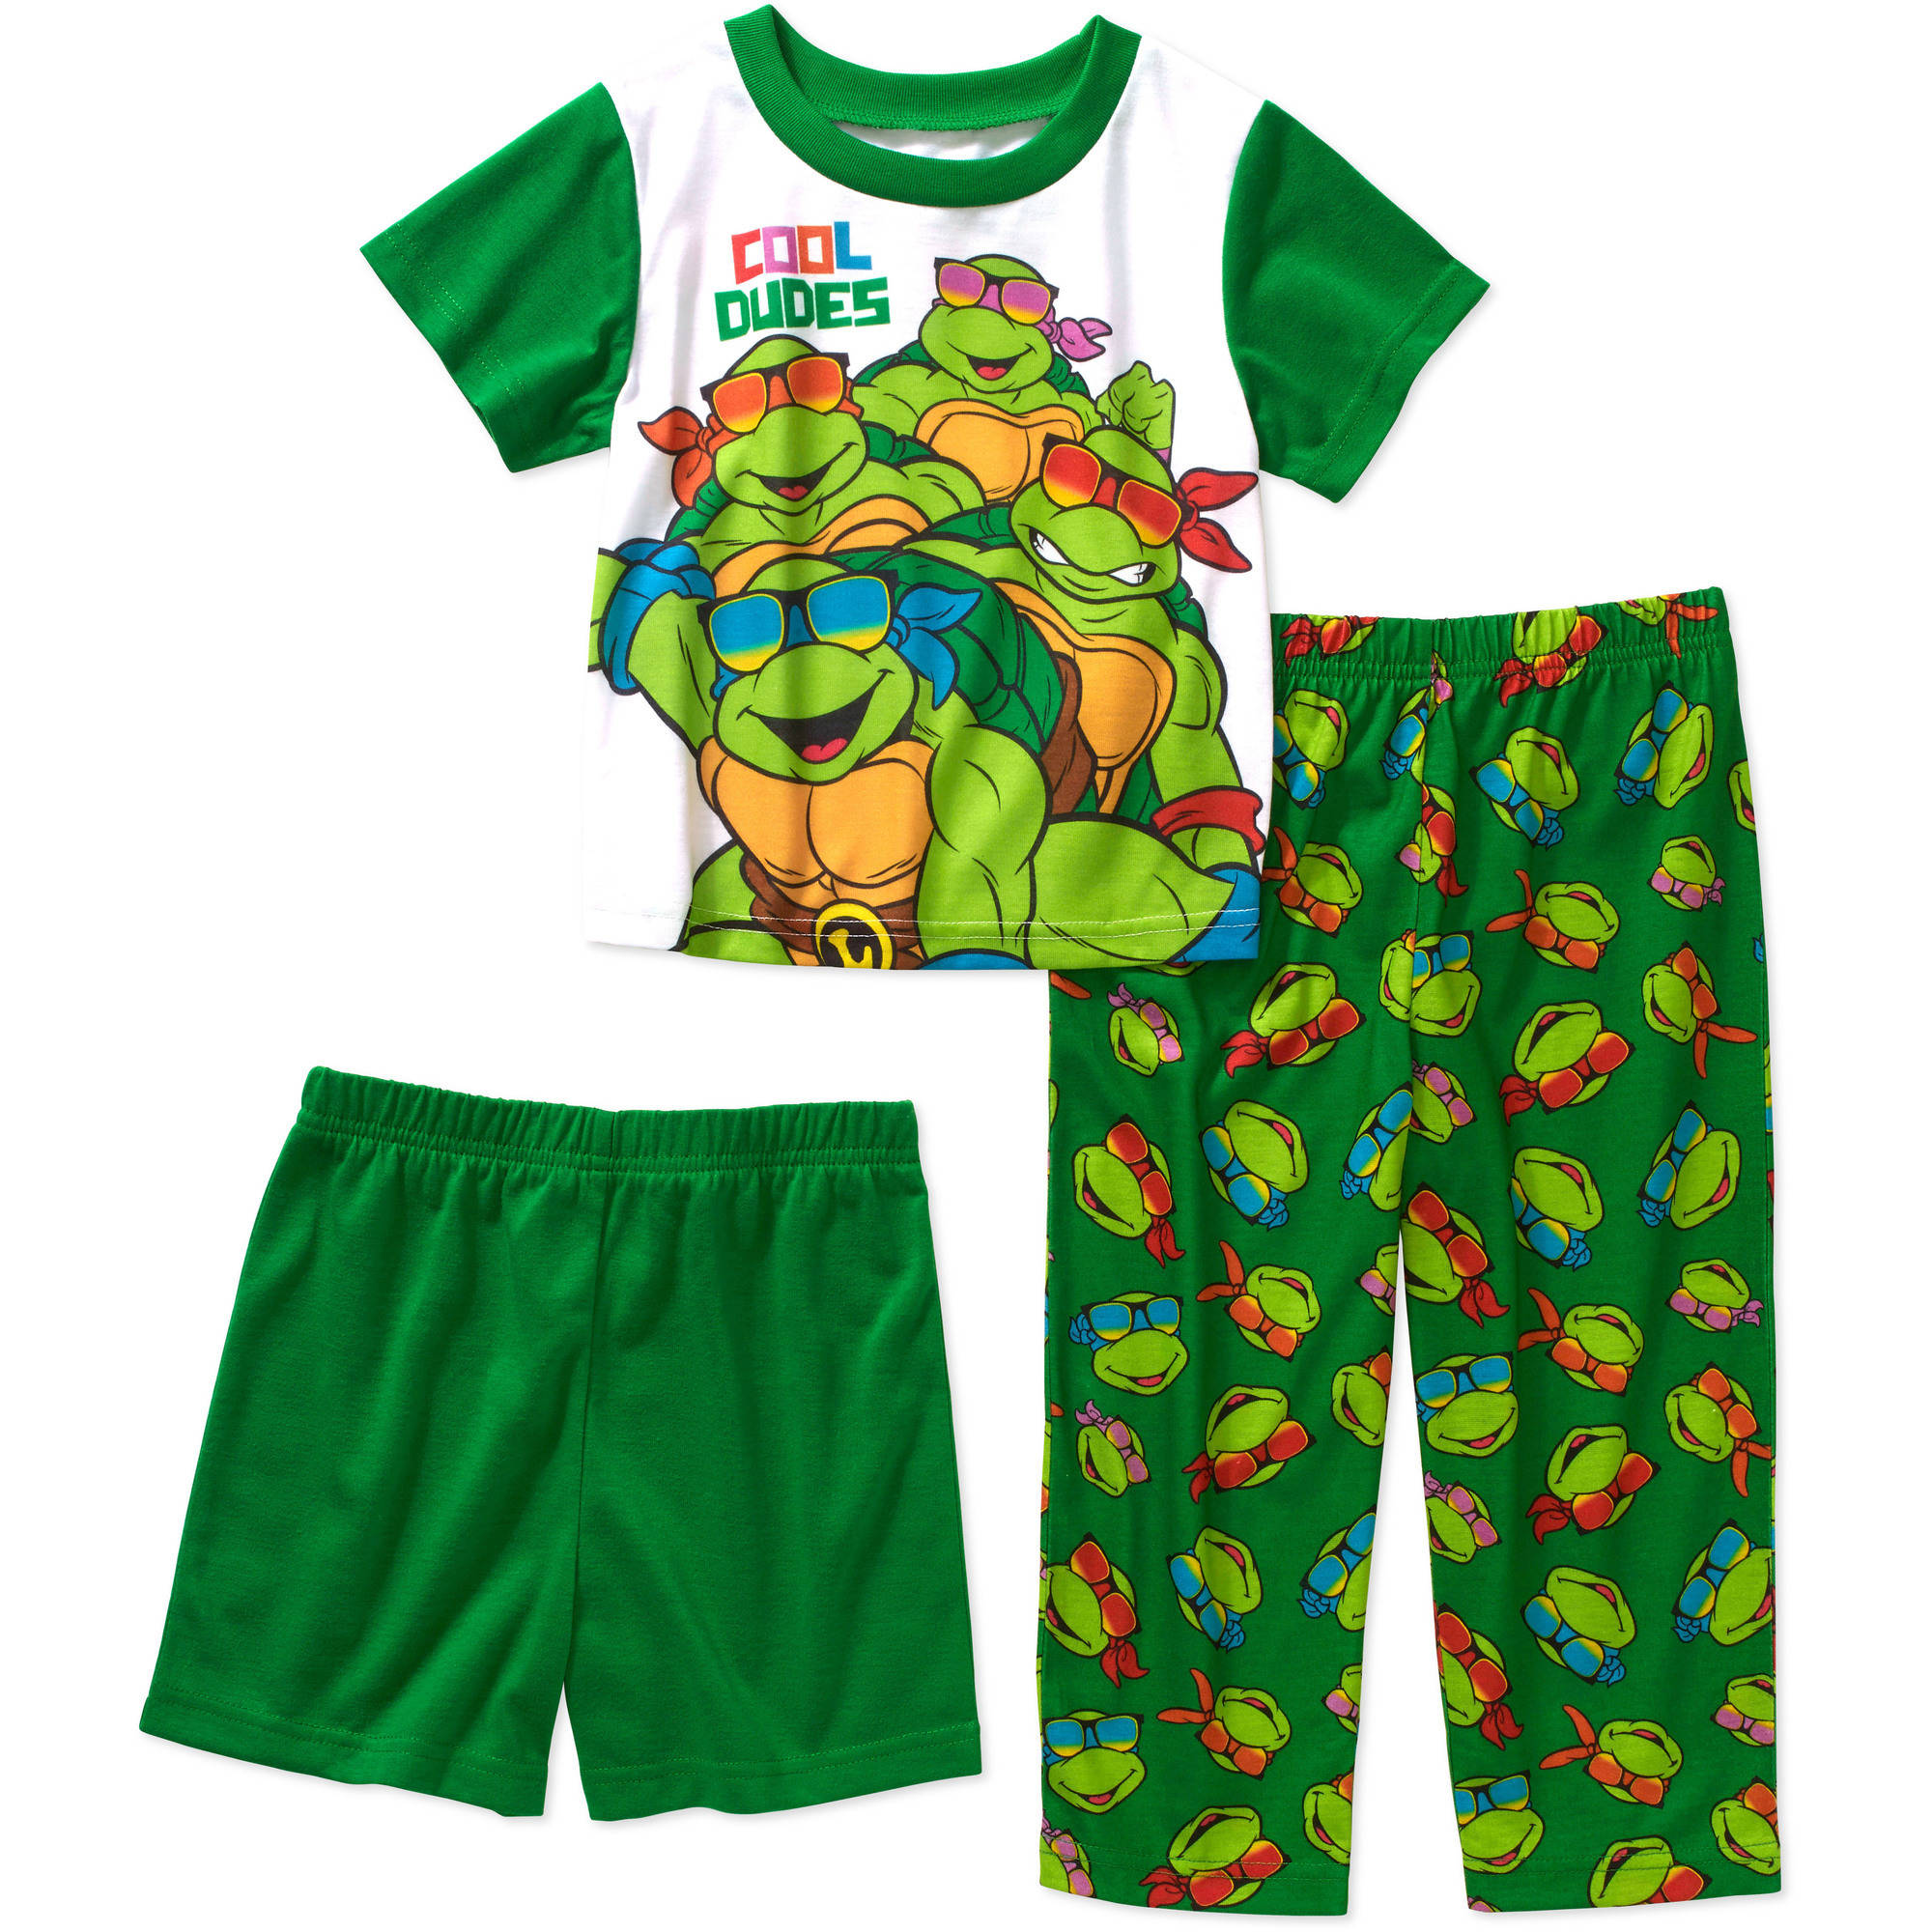 Teenage Mutant Ninja Turtles Baby Toddler Boy Short Sleeve 3-Piece Sleepwear Set